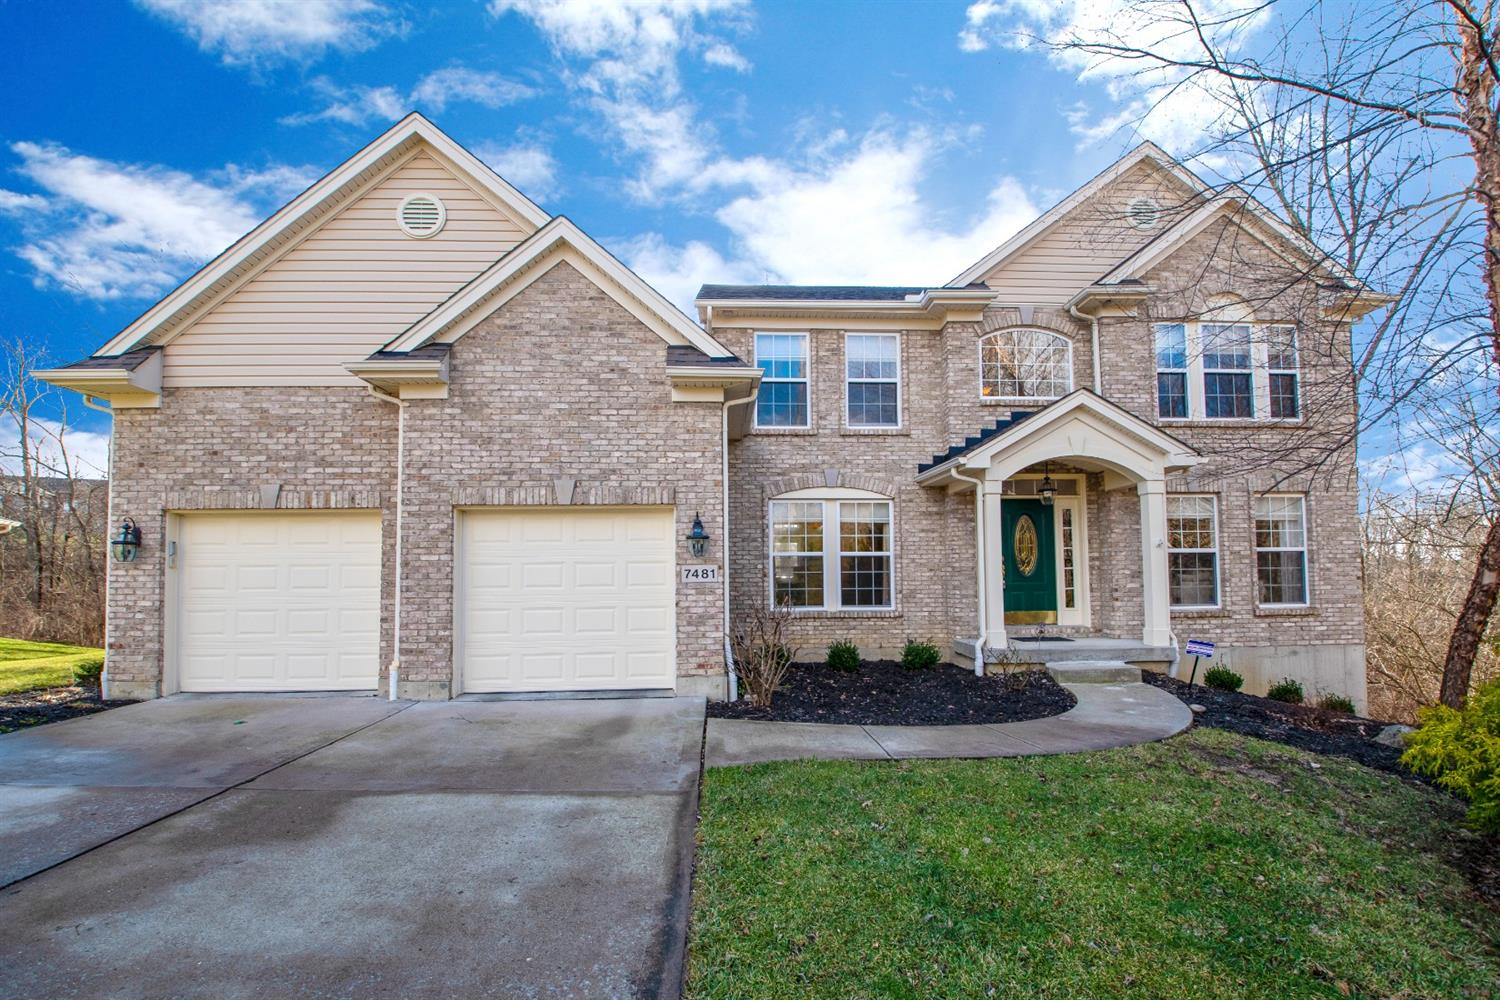 7481 Fiddlers Trail Dr Miami Twp. (West), OH